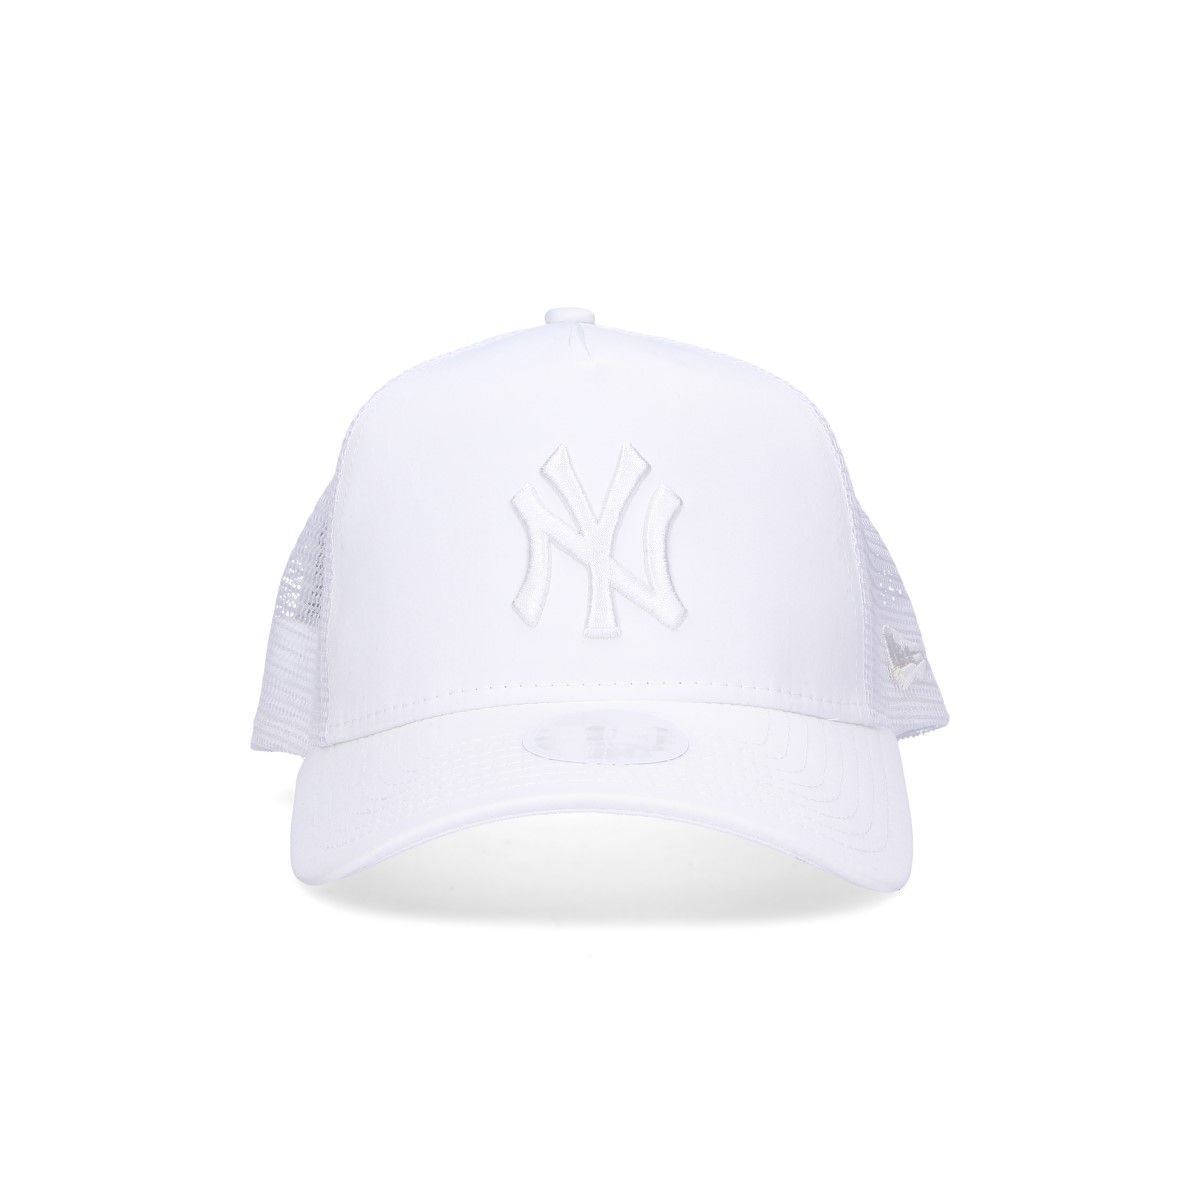 New Era White Fabric Hat